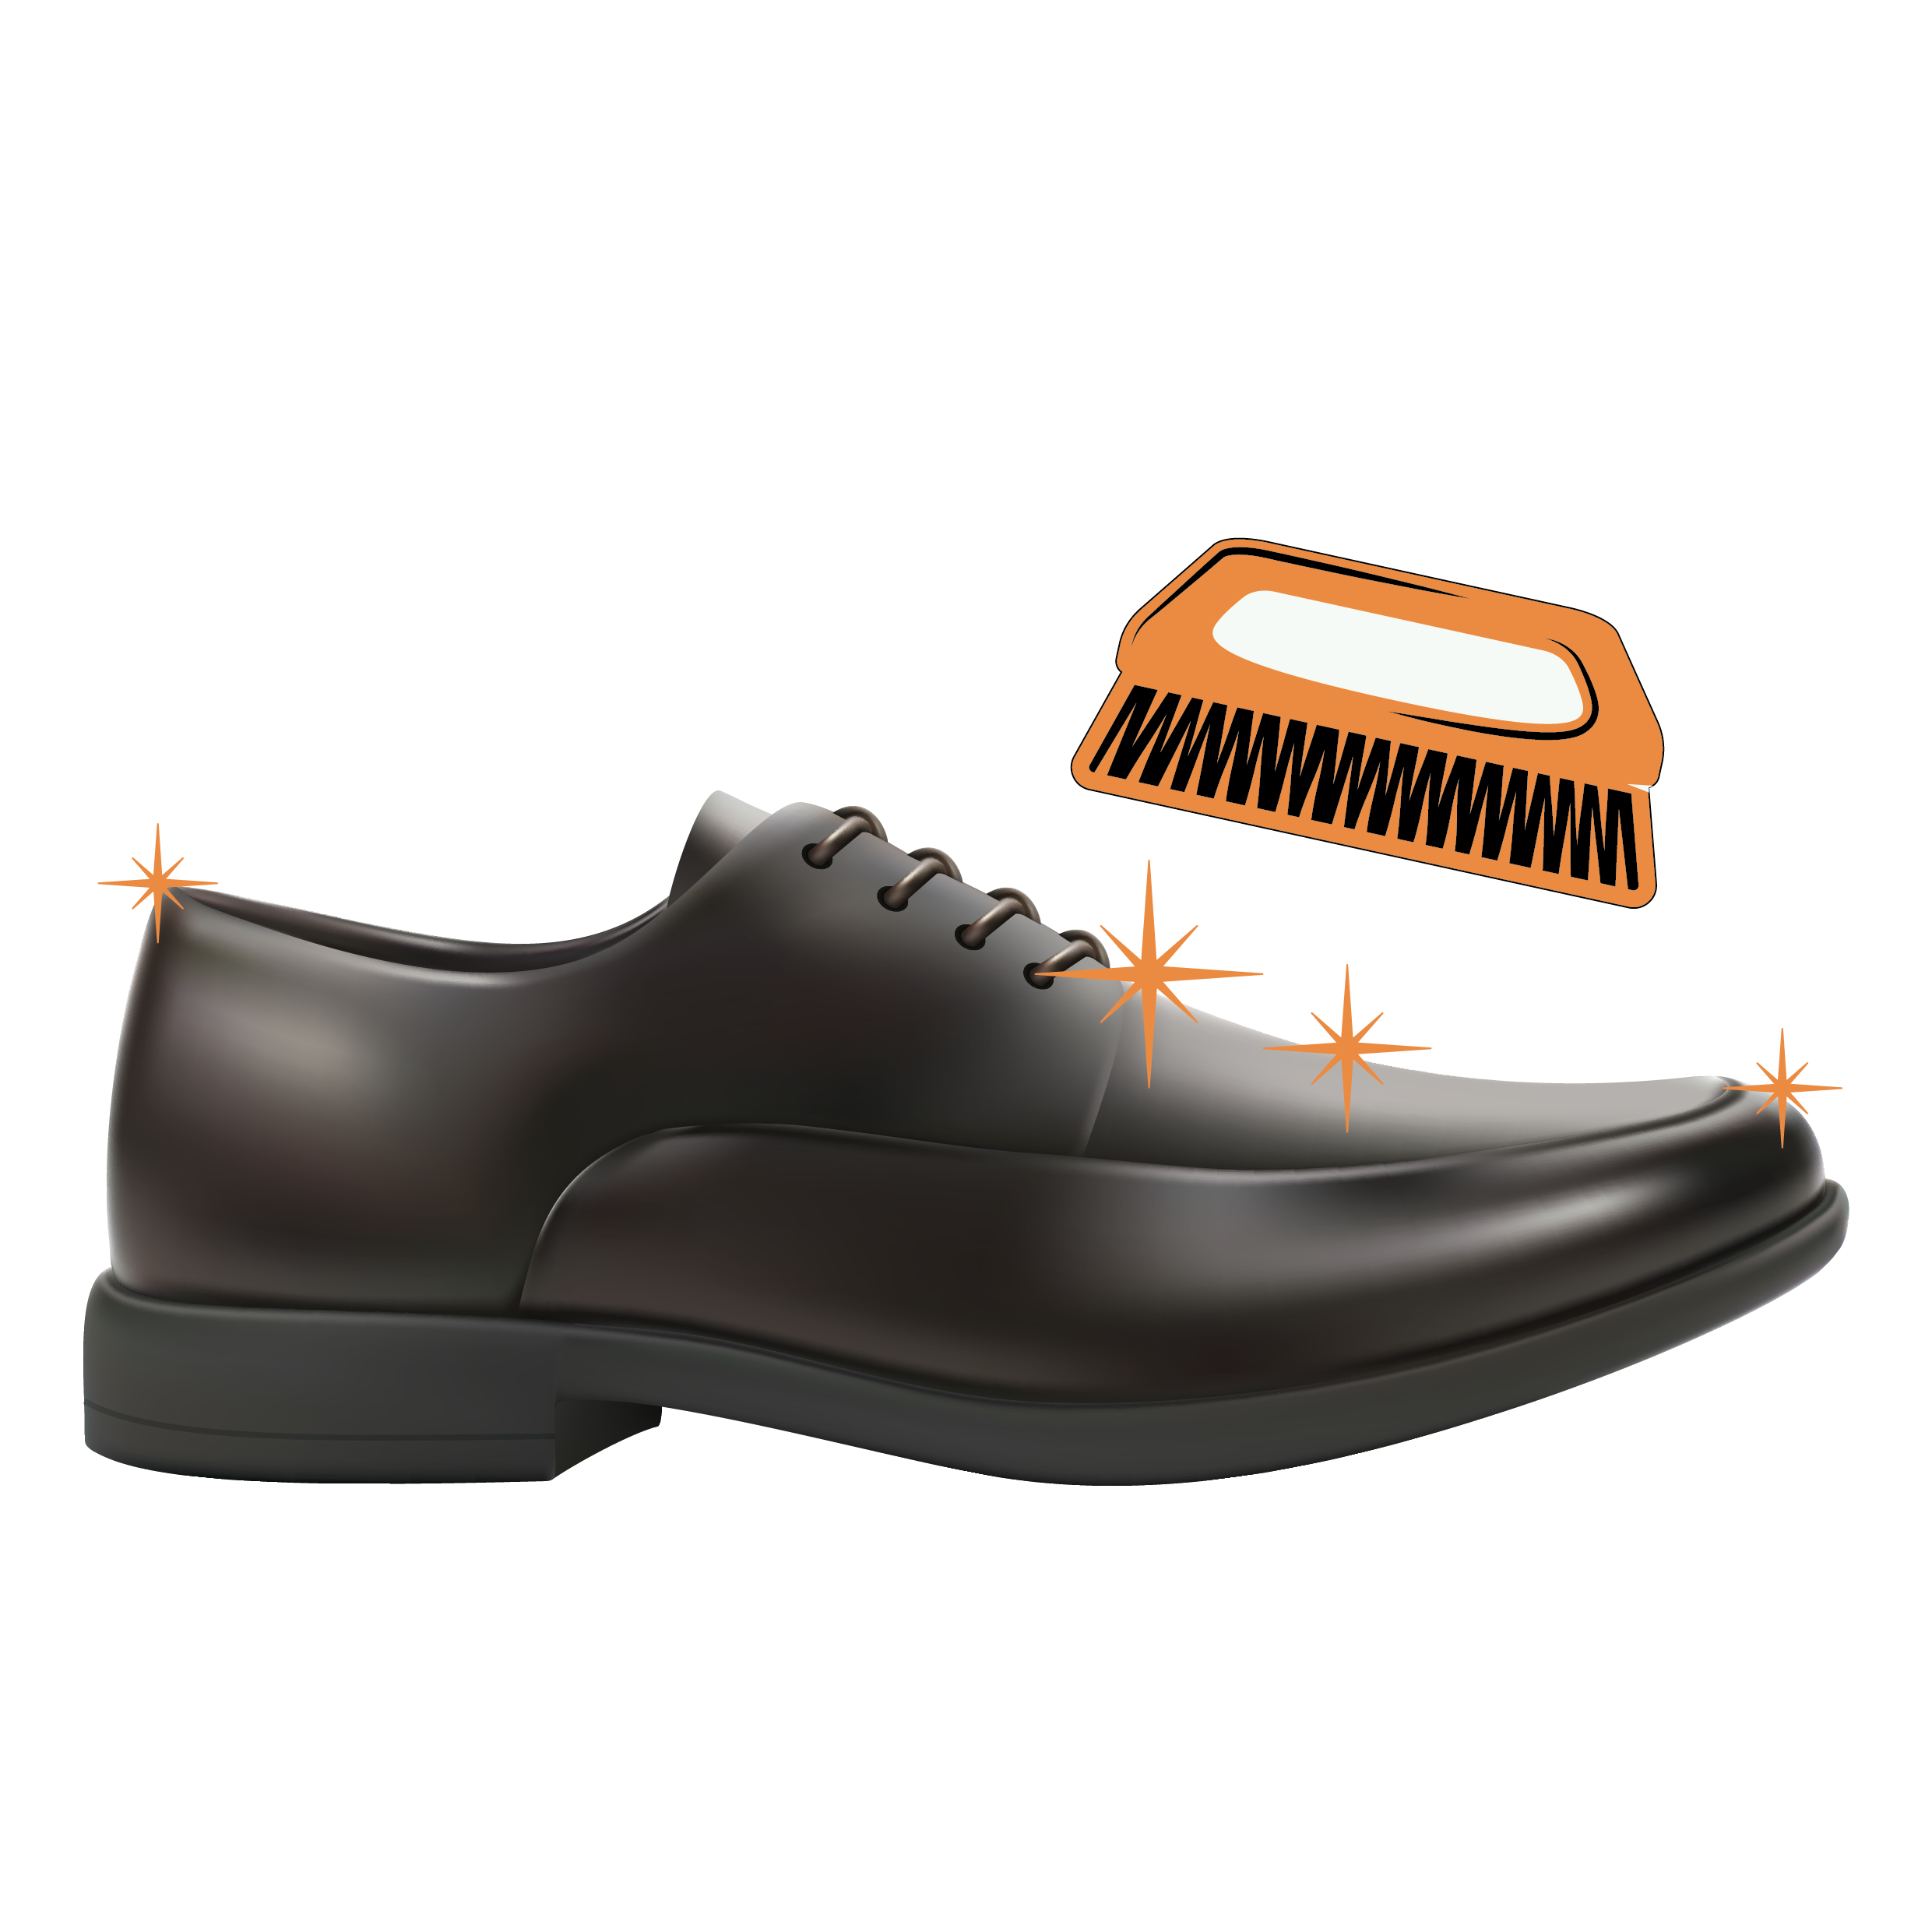 Shoe Care Images_Shoe Cleaning